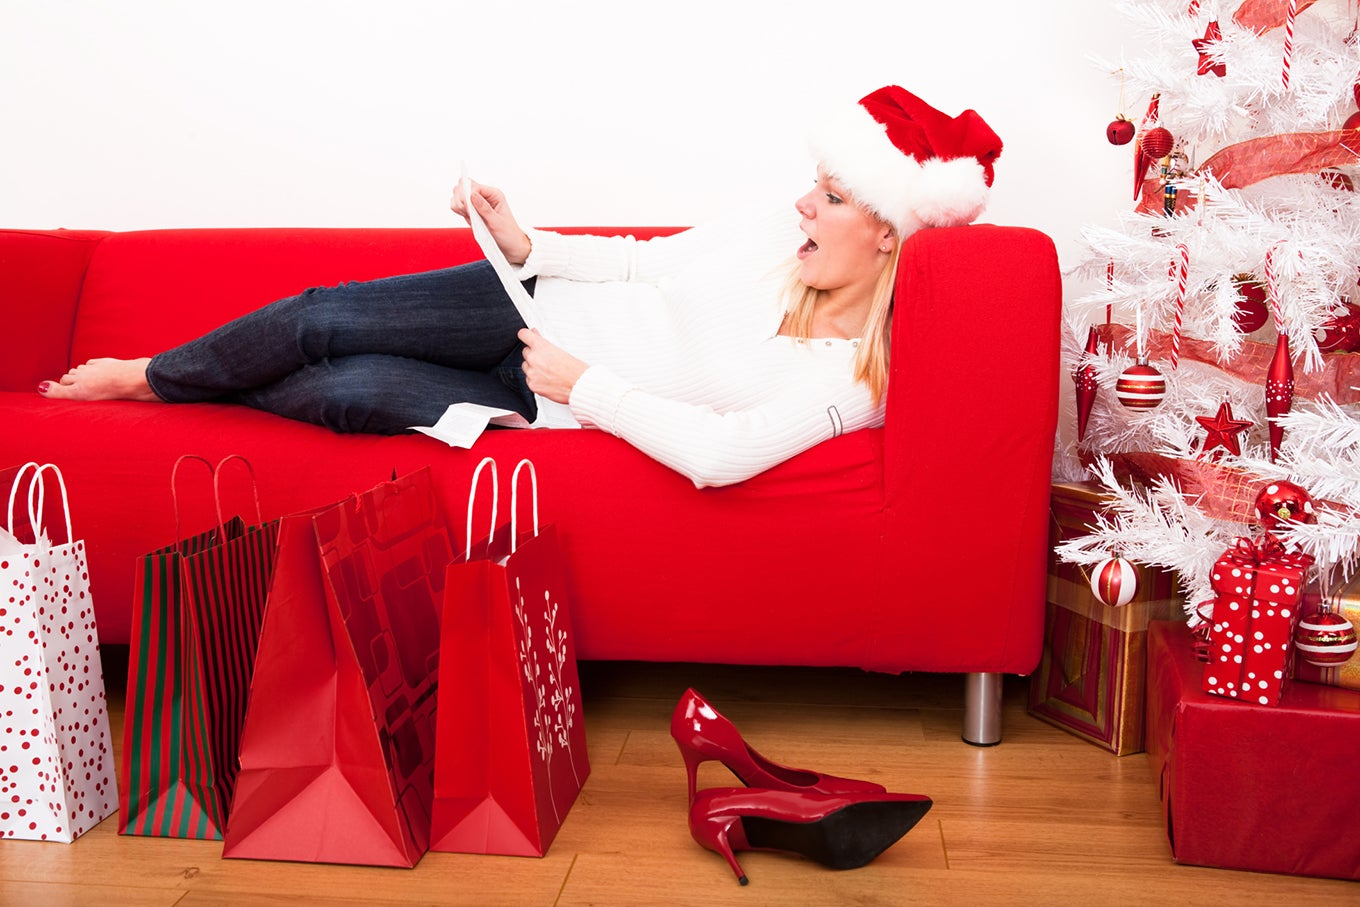 How To Get A Loan With Bad Credit >> The Impact of Buying Gifts You Can't Afford | Credit.com